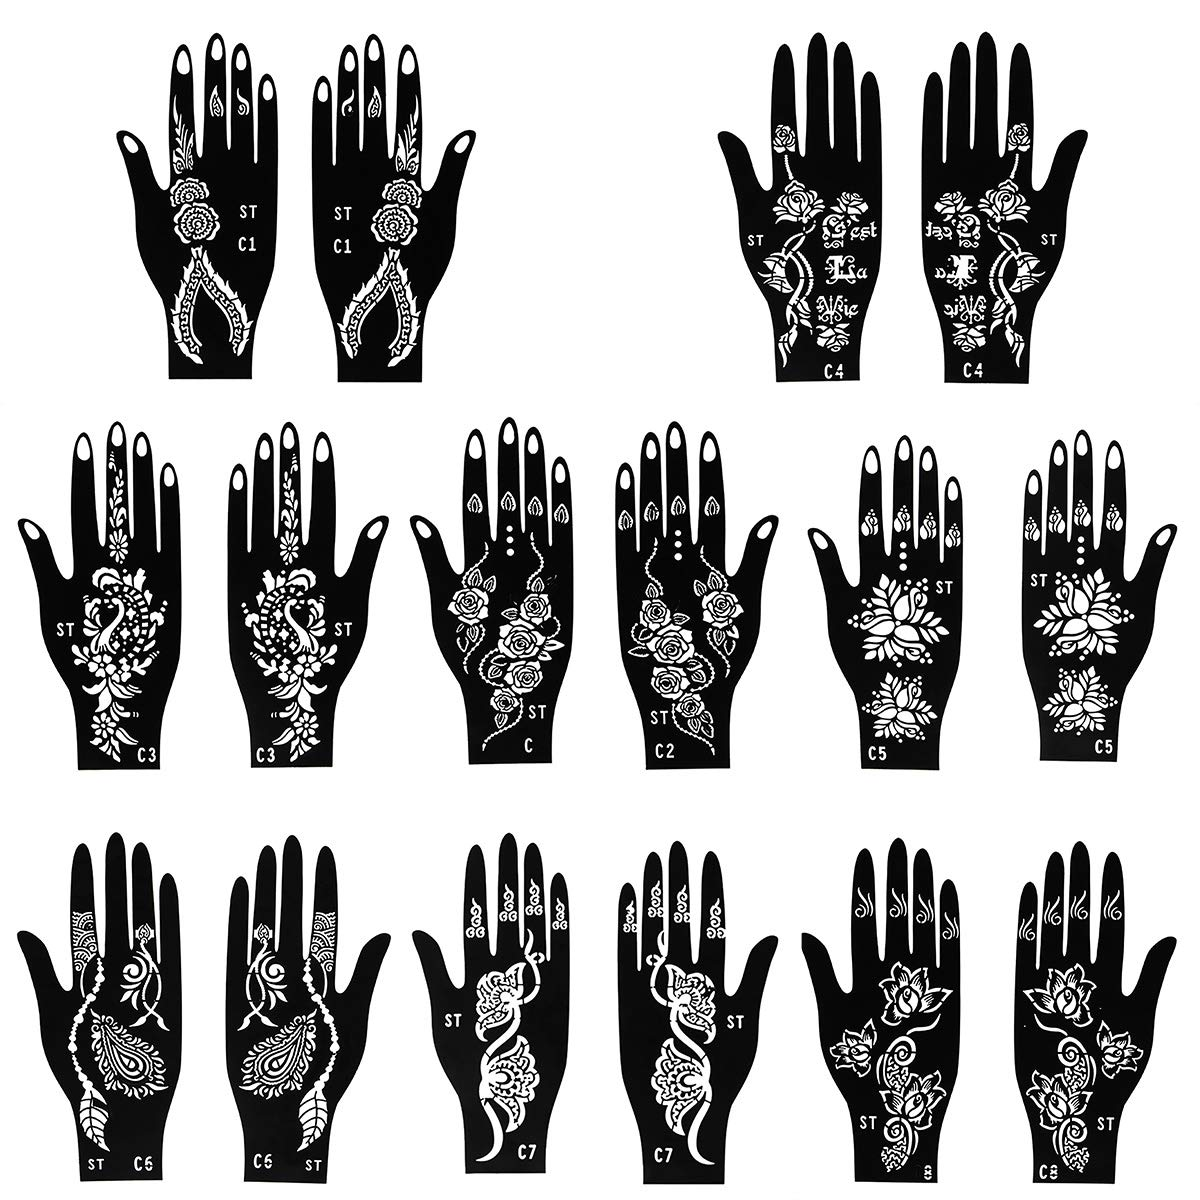 8 pieces Henna tattoo stencils set for finger body paint 8 different patterns art designs temporary tattoo templates